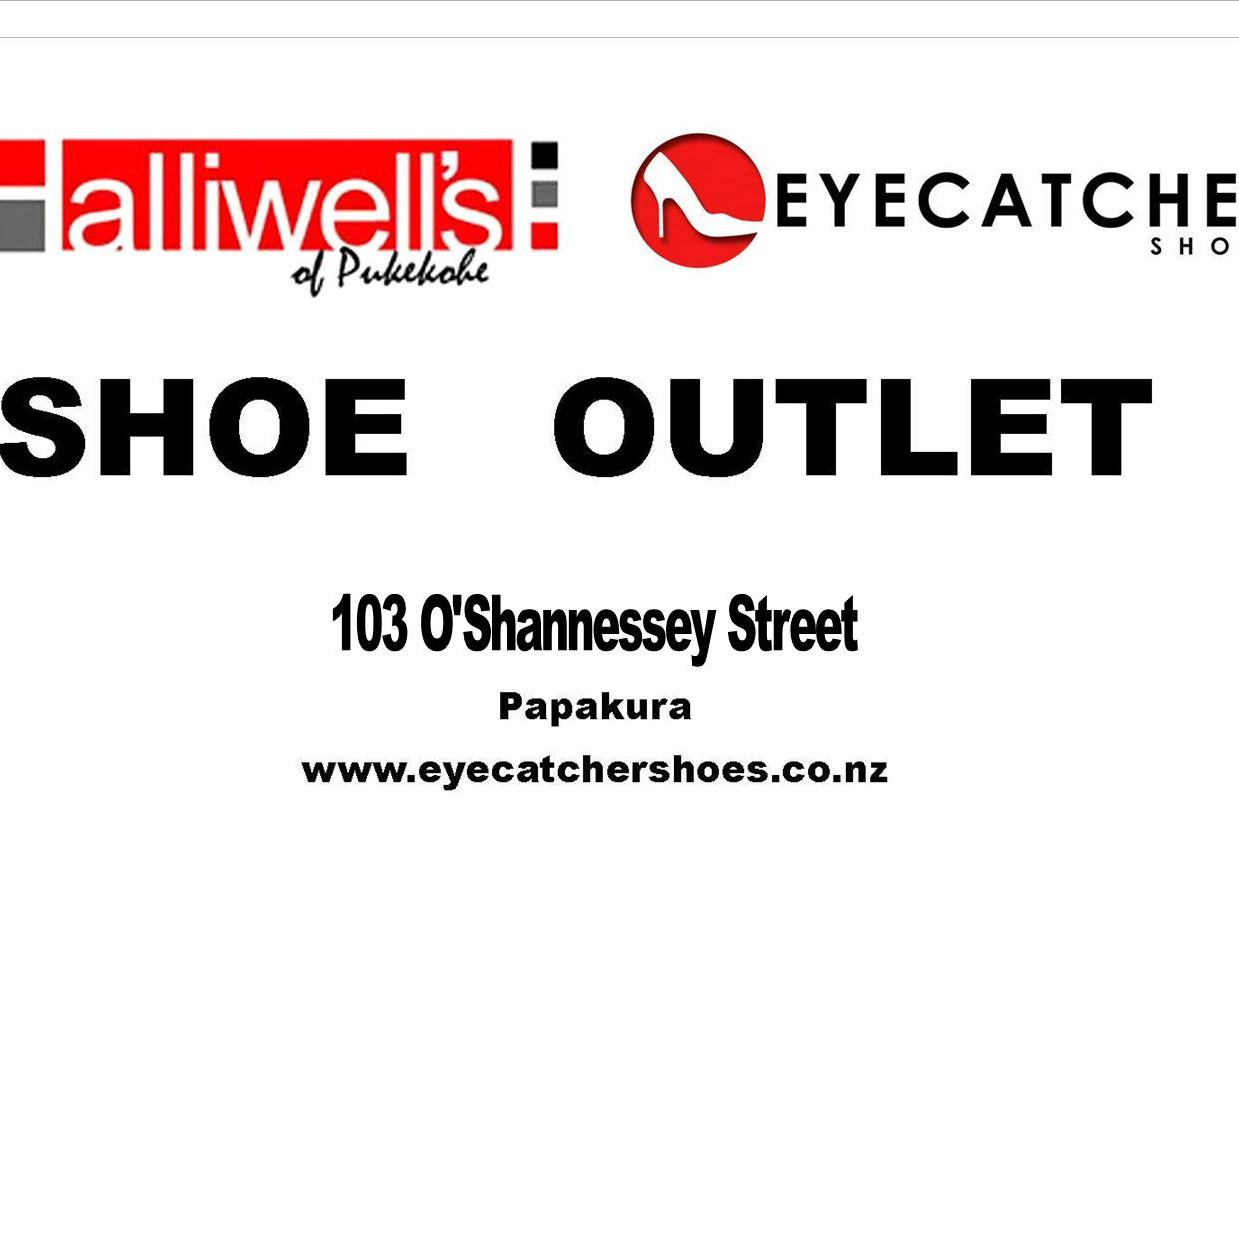 Halliwell-Eyecatcher Shoes Outlet